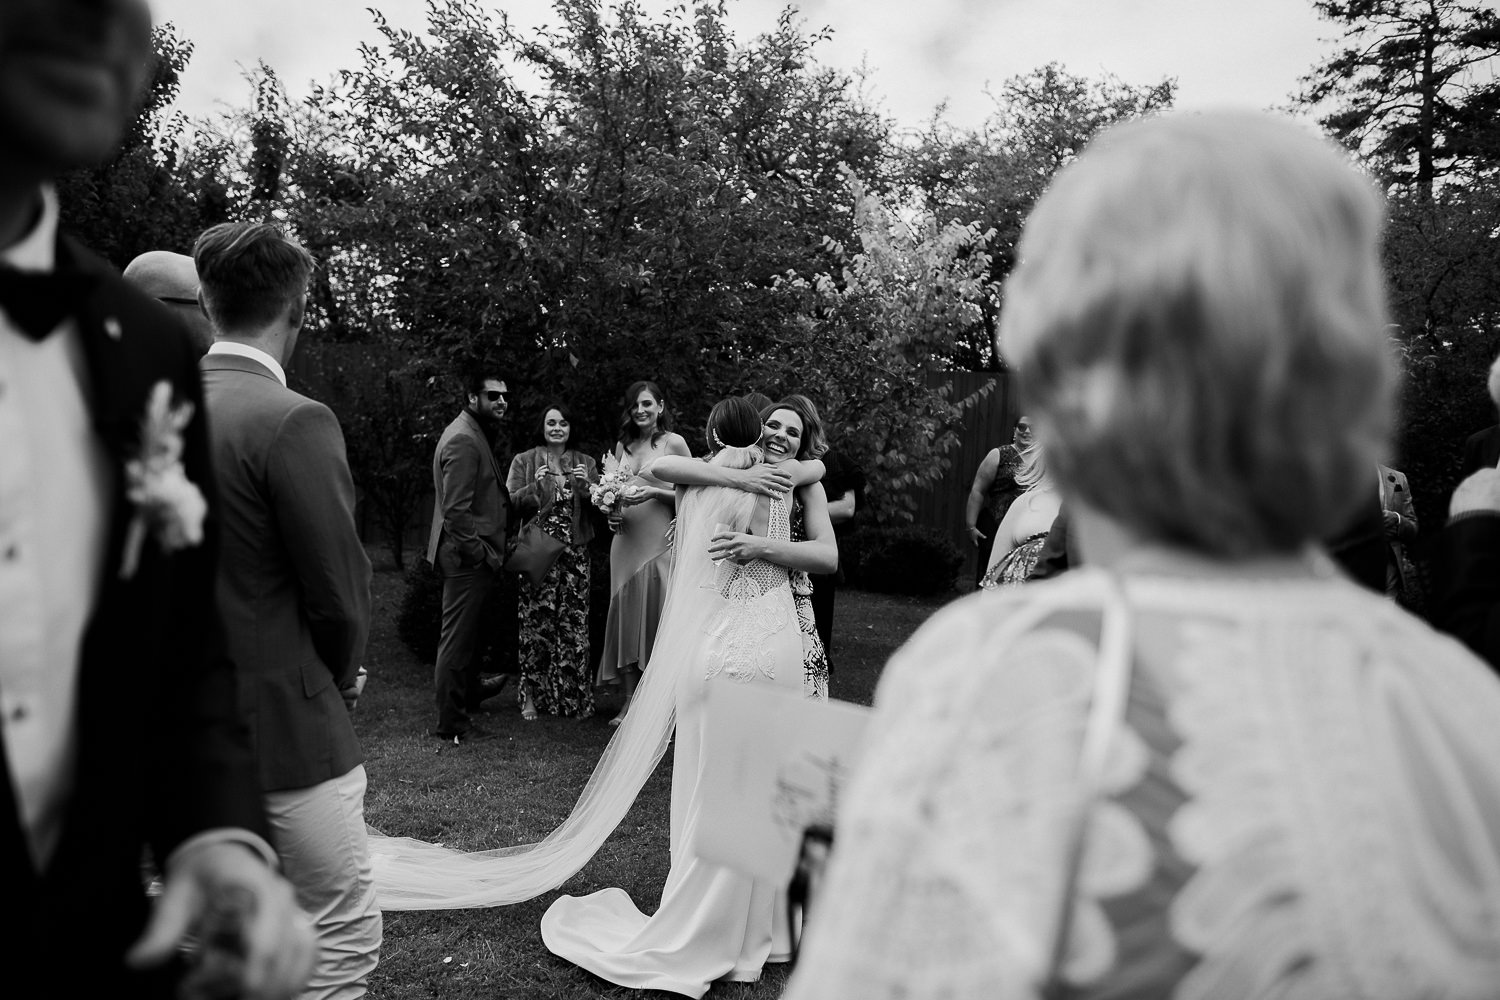 private-property-wedding-relaxed-melbourne-fun-documentary-photography_0105.jpg